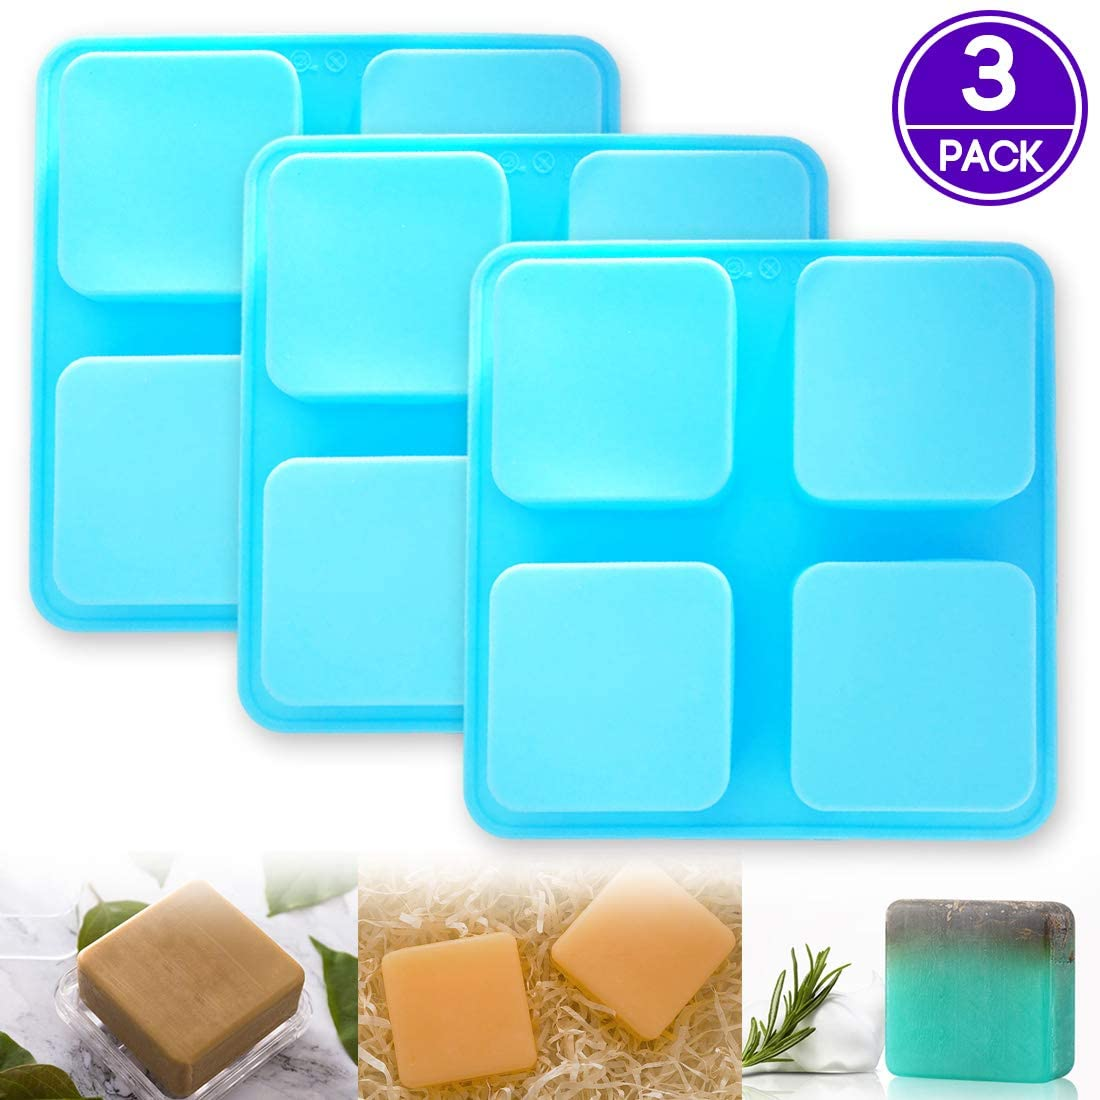 PERNY Silicone Soap Molds for 2.5